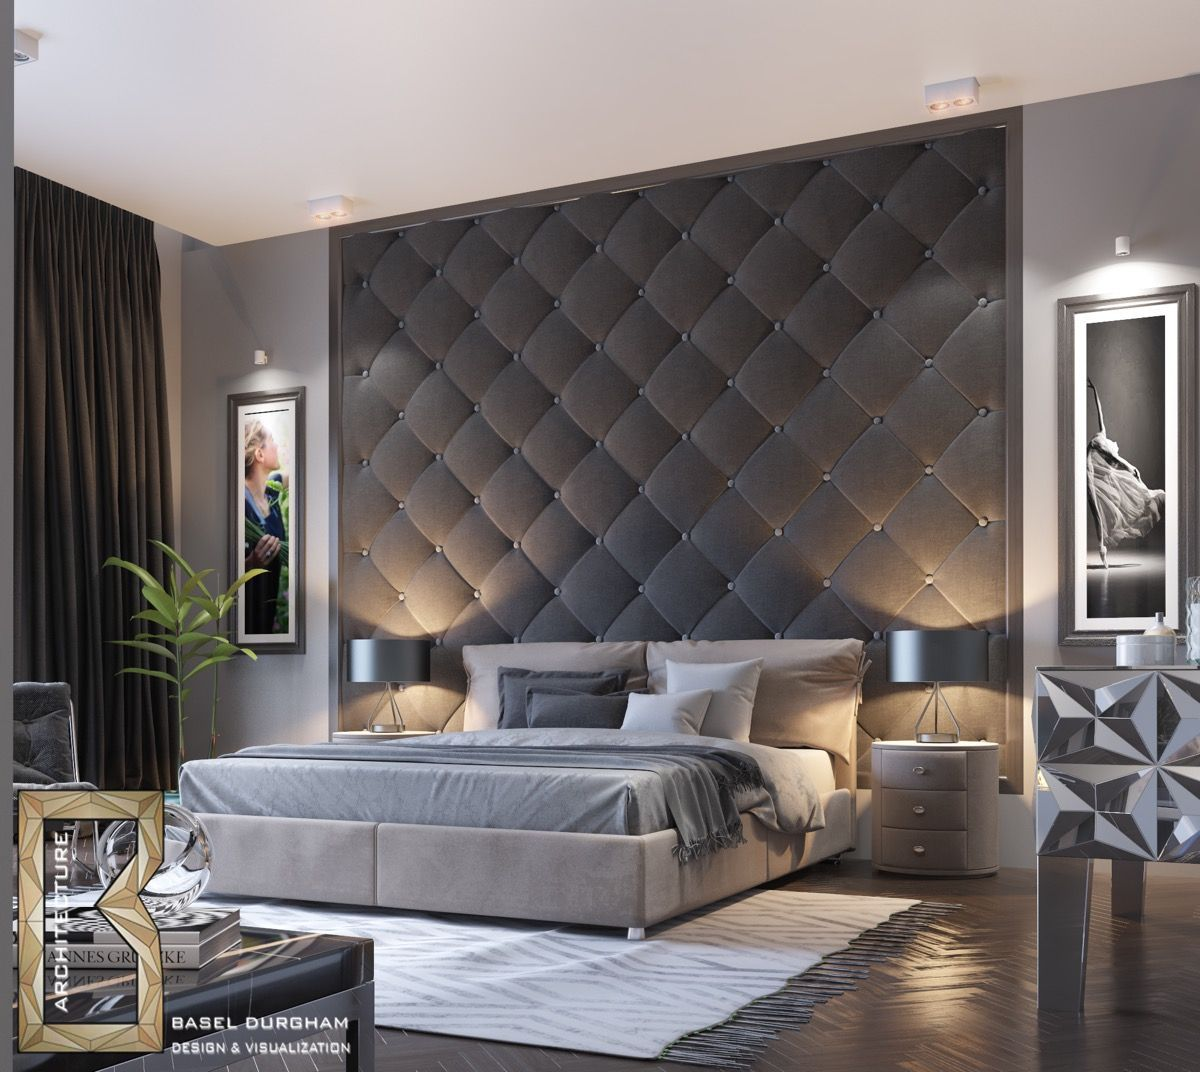 Pin By Shlomit Diskin On Bedroom Decor In 2021 Feature Wall Bedroom Luxury Bedroom Design Bedroom Interior Luxury room paint design